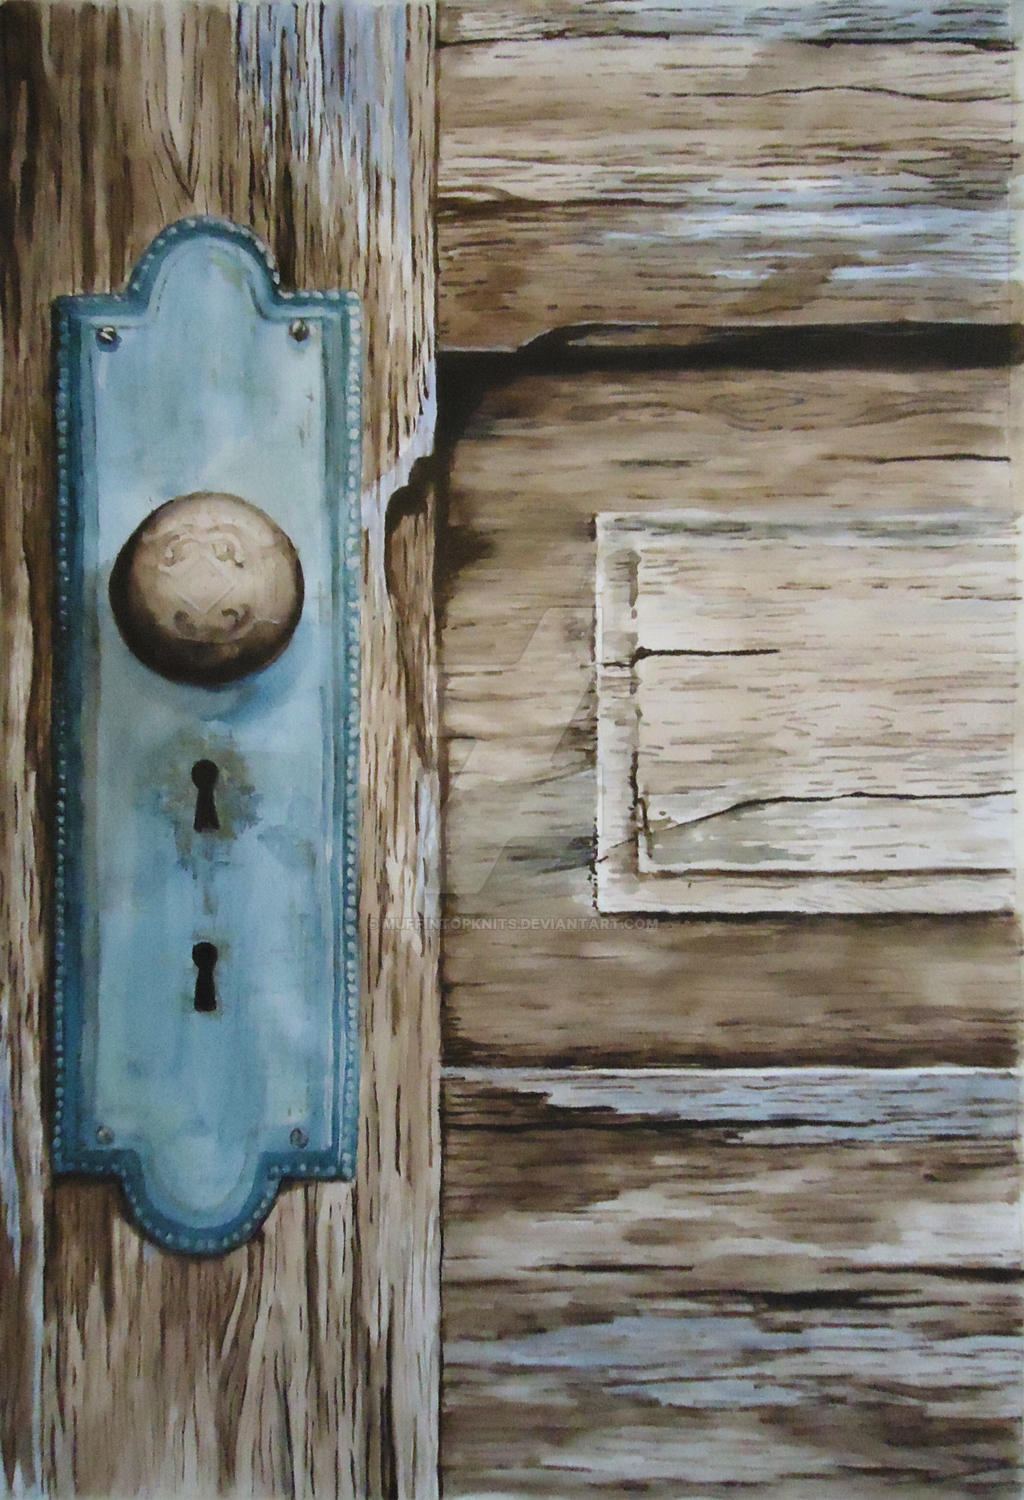 Old door by MuffinTopKnits Old door by MuffinTopKnits & Old door by MuffinTopKnits on DeviantArt